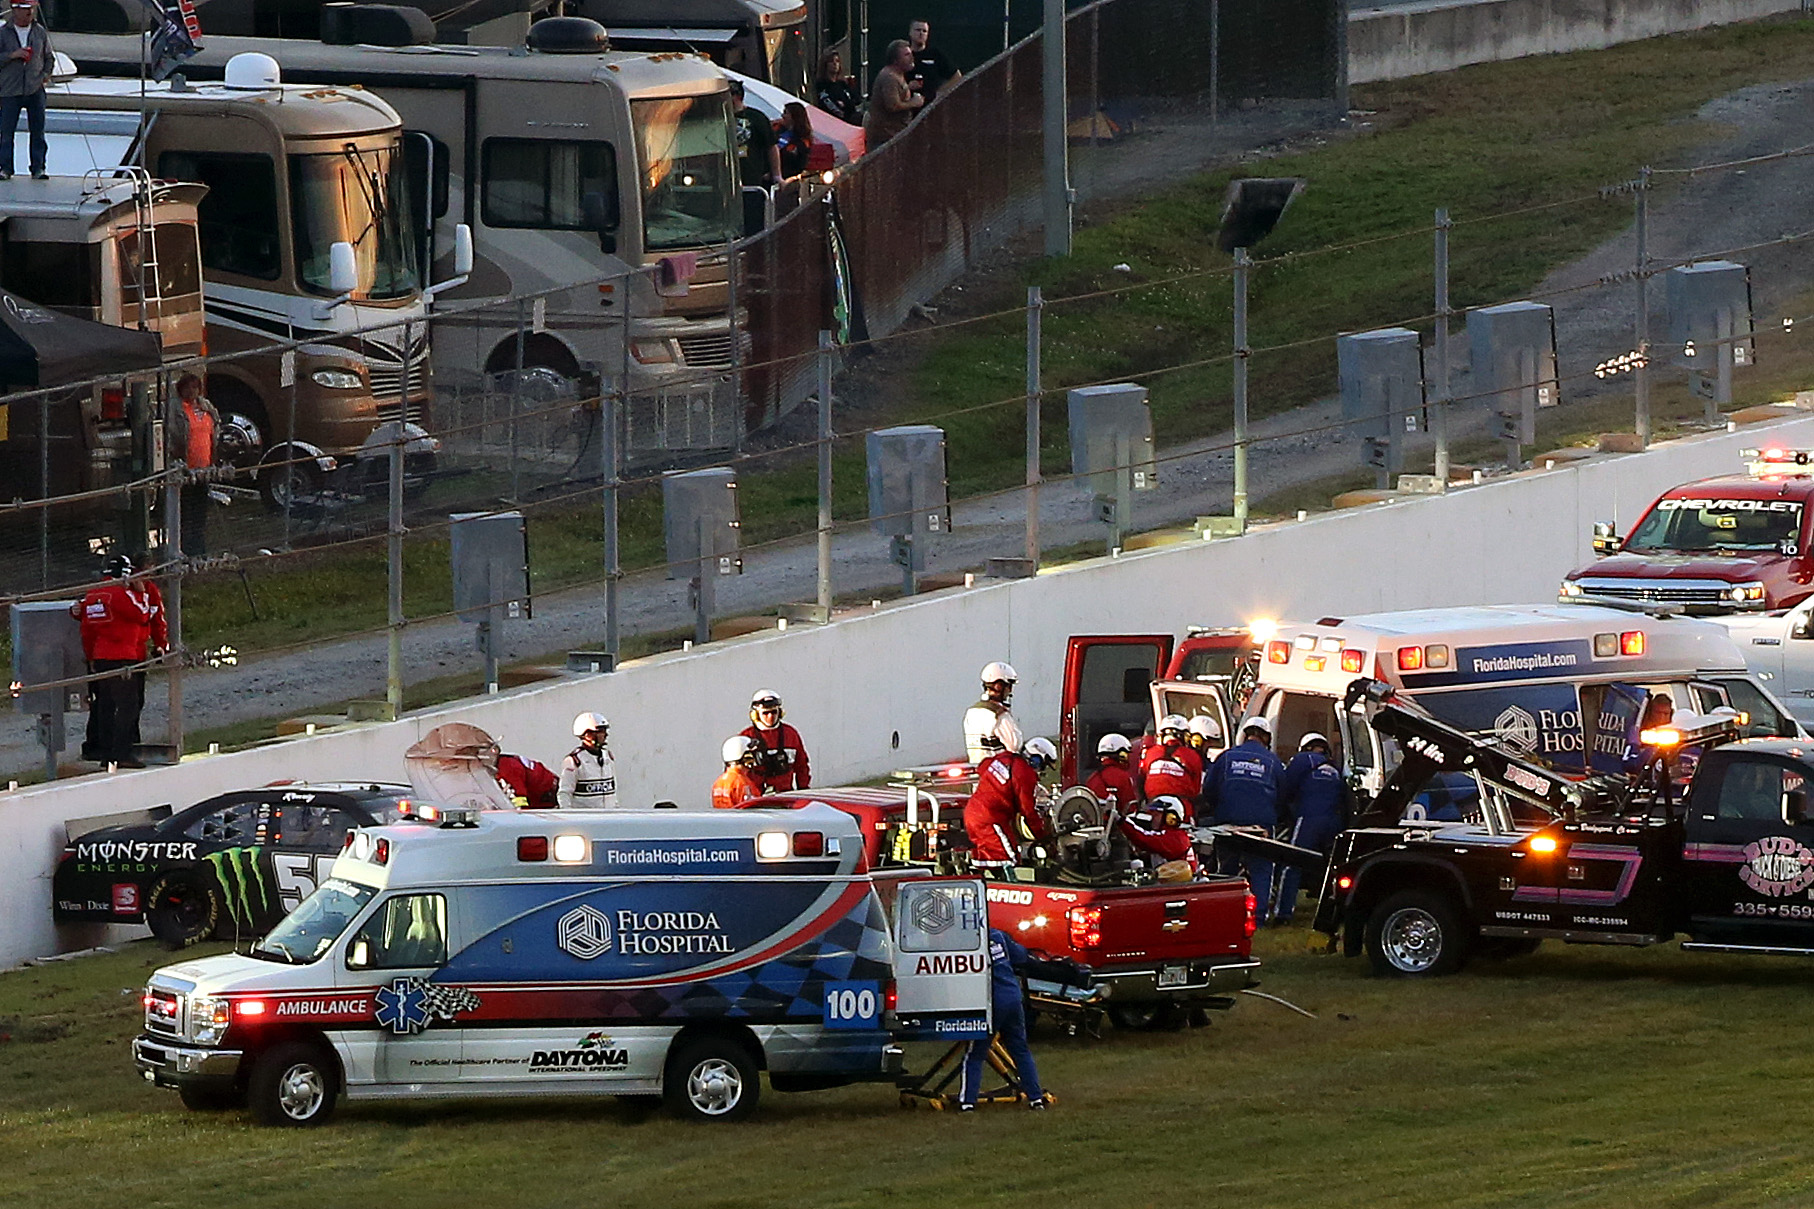 NASCAR's stance on safety rings hollow without more action